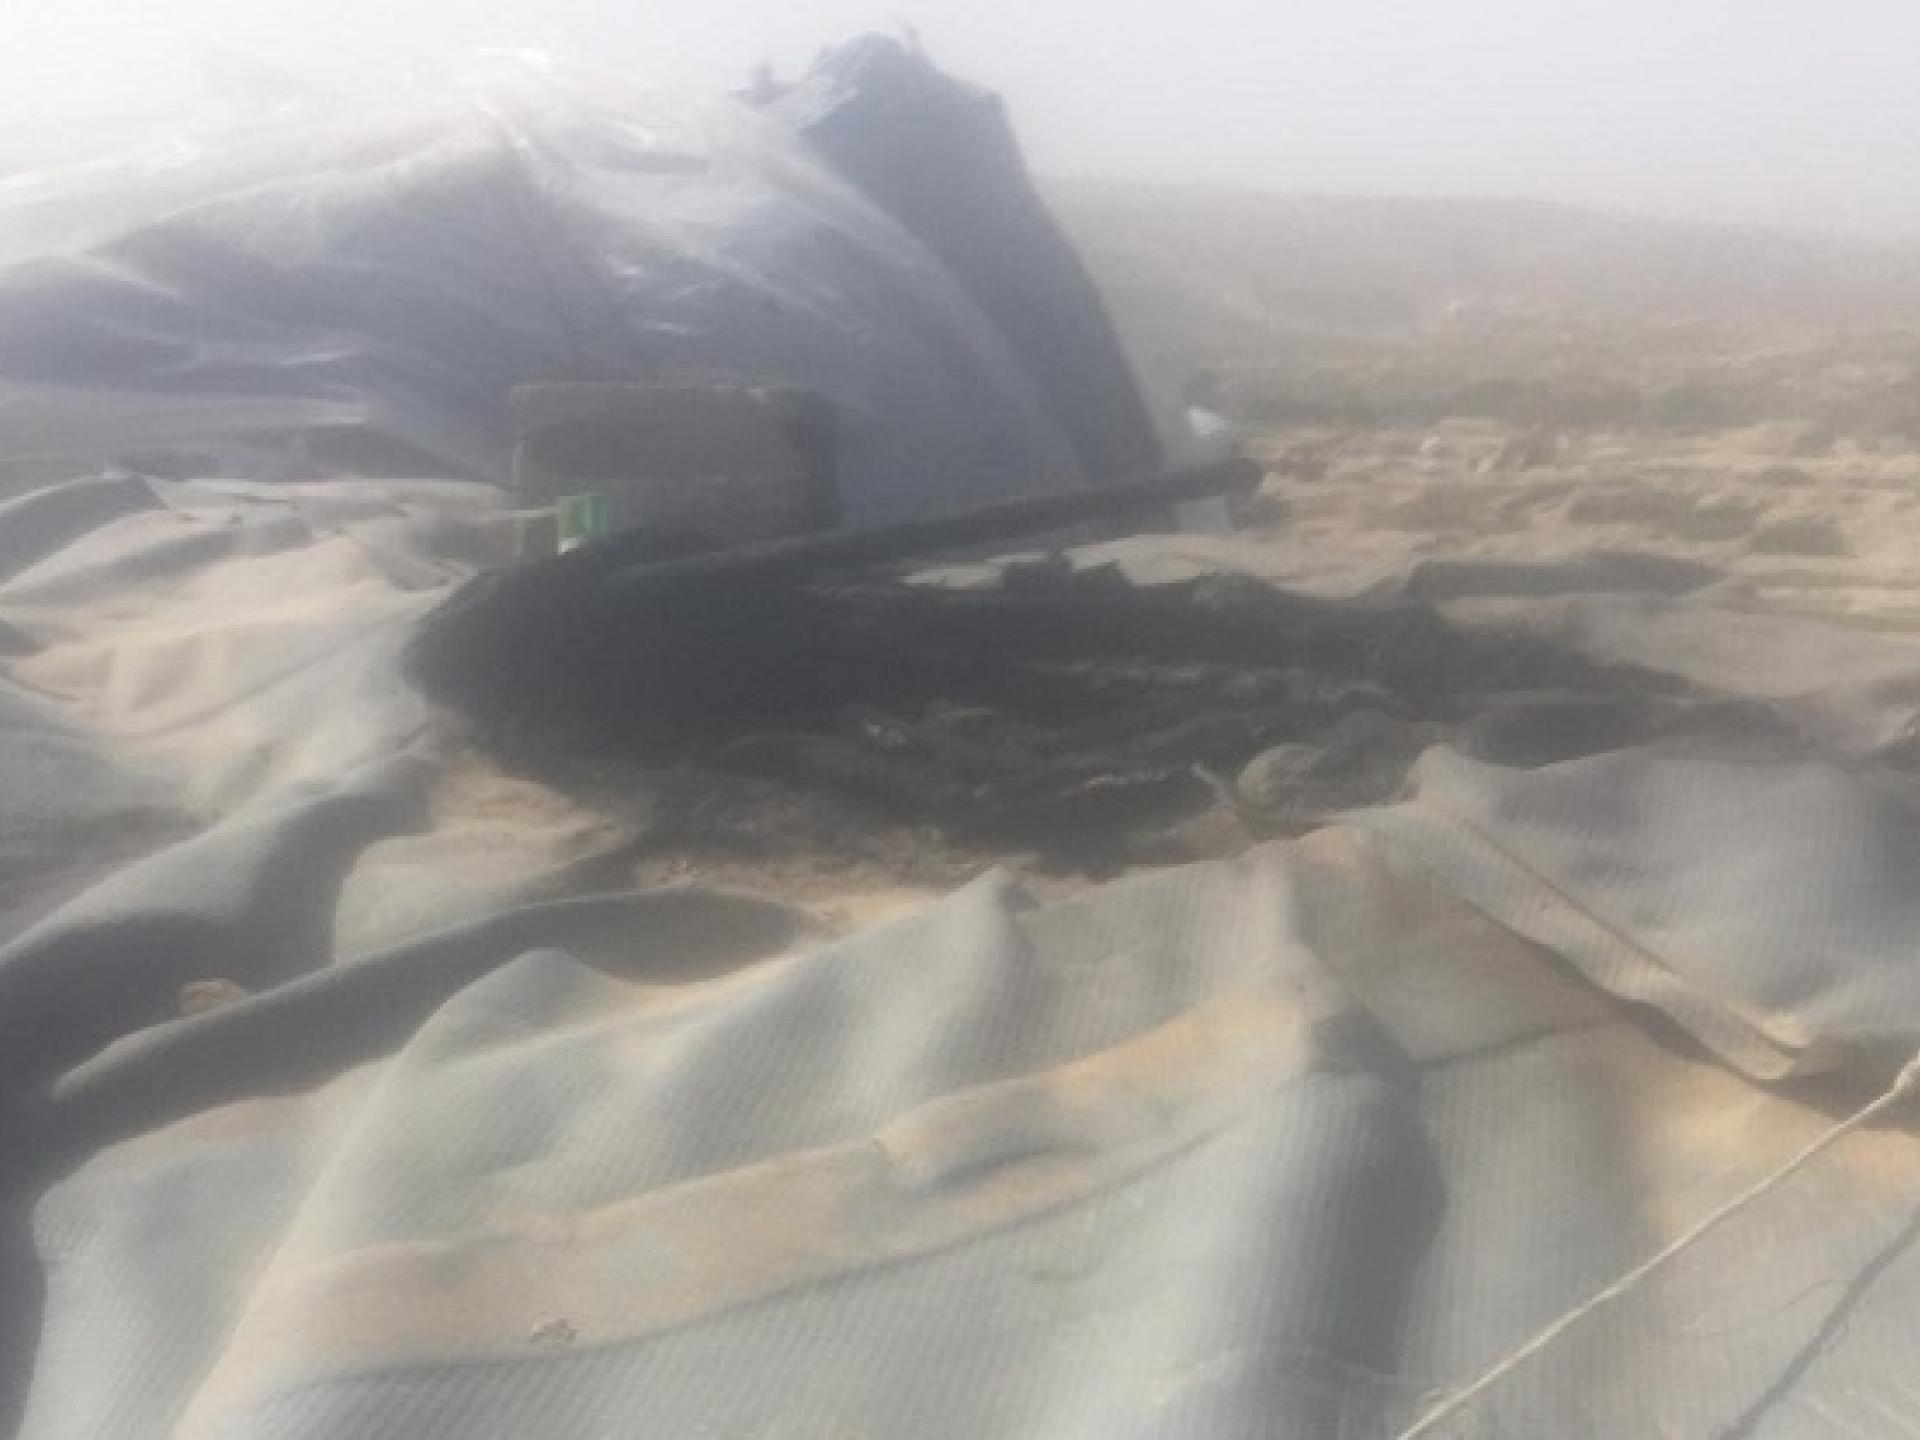 The damage to Azam's taboon